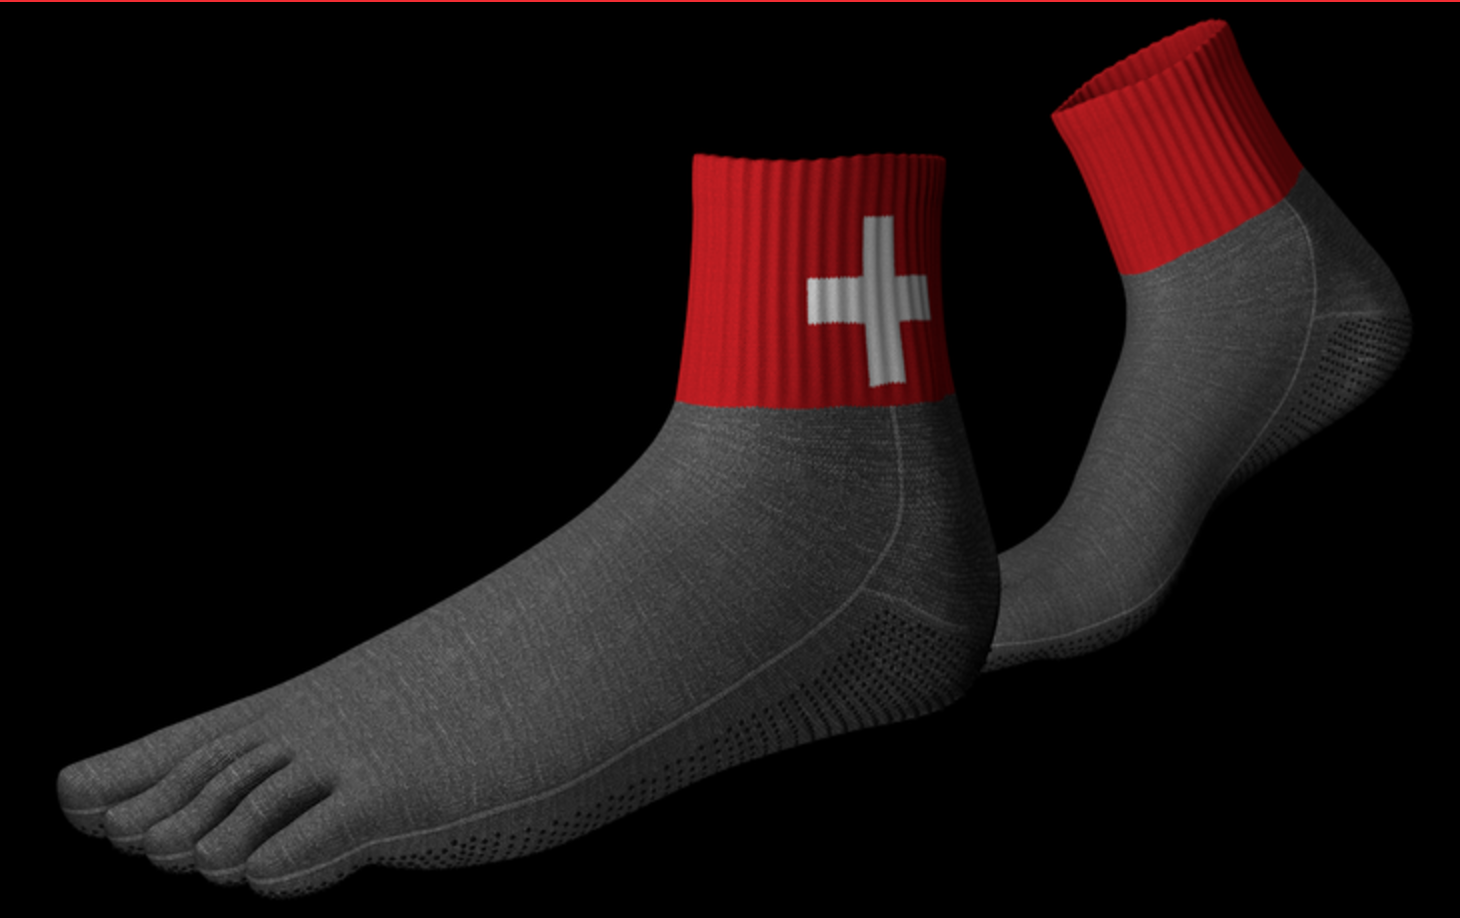 Super Strong High-Tech Socks You Don't Need to Buy a Pair of Shoes